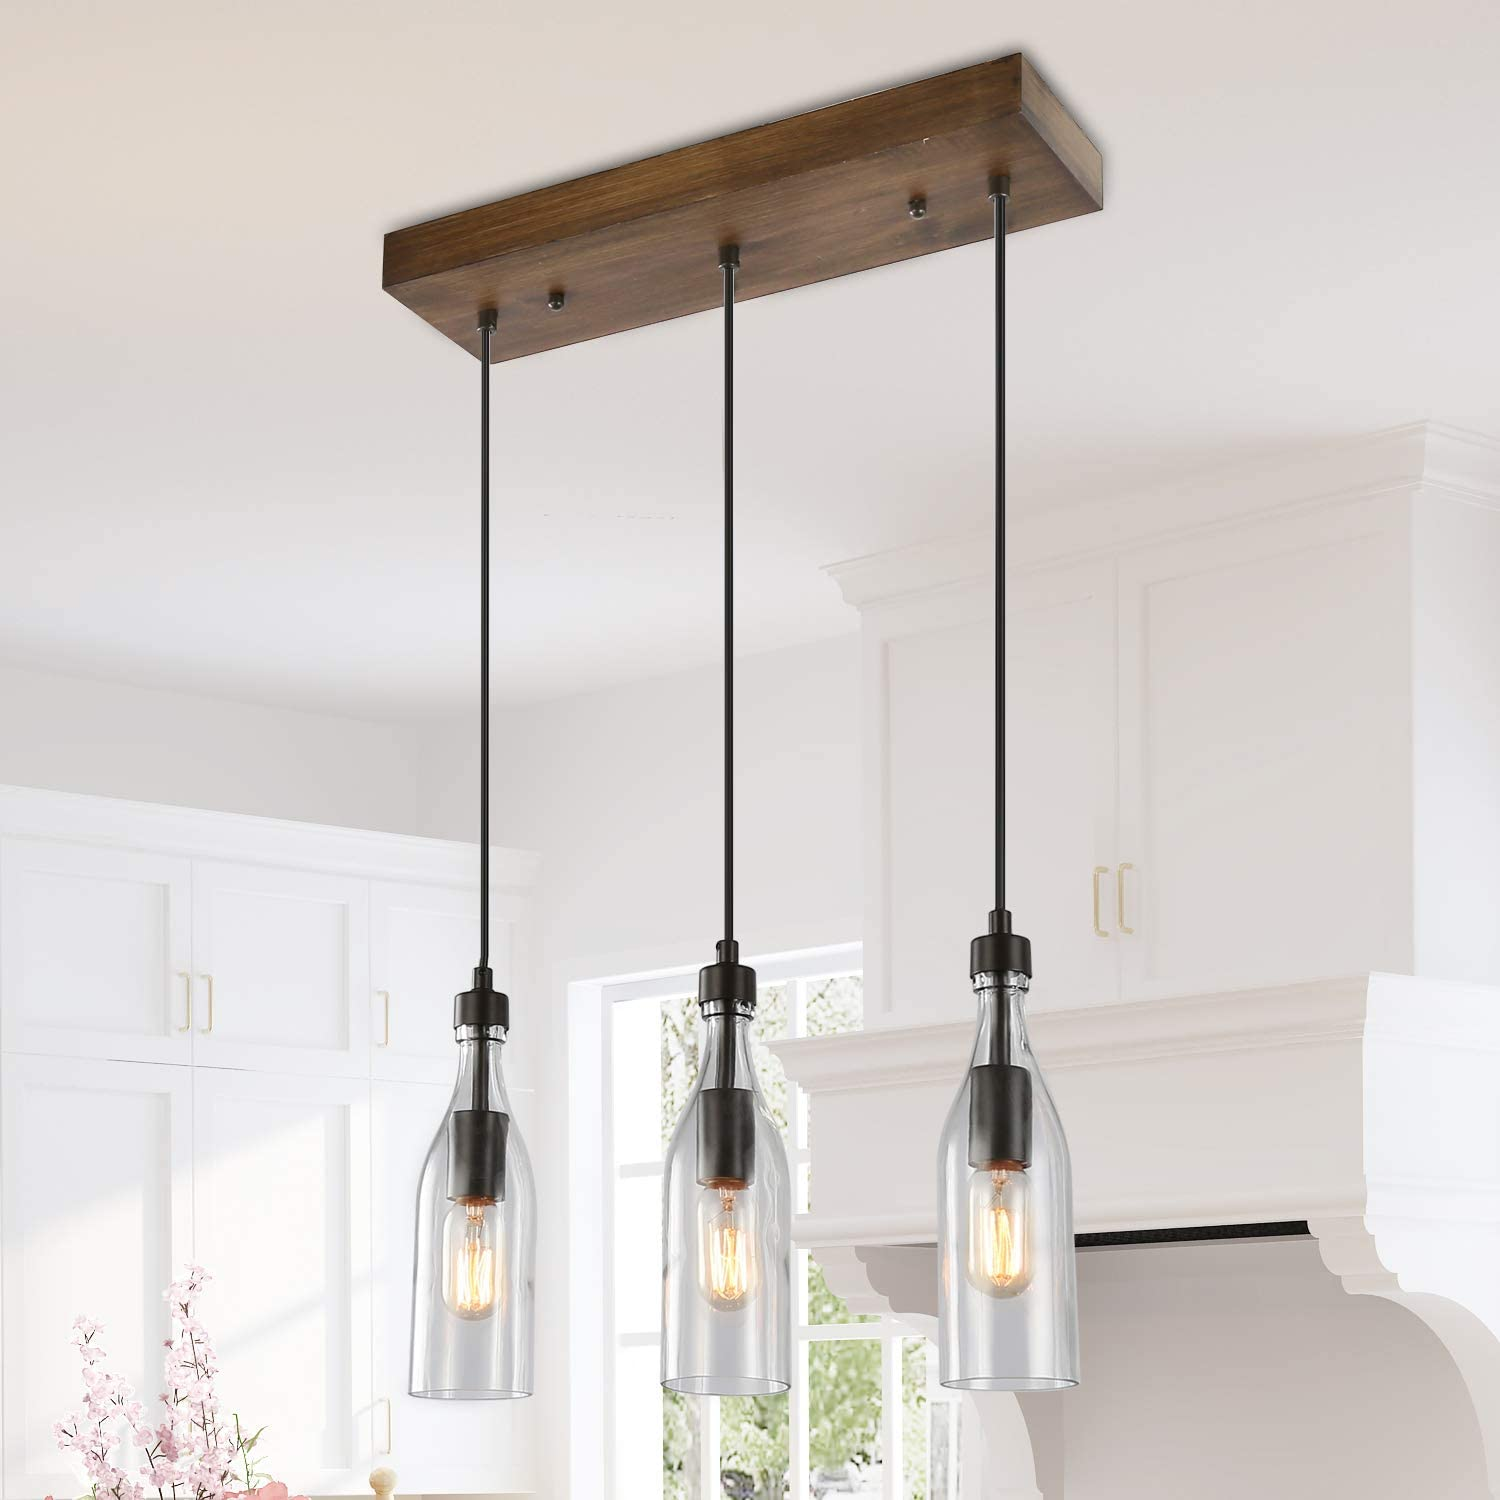 Lnc A03491 Wooden Pendant Lights 3 Height Adjustable Farmhouse Chandelier For Kitchen Island And Dining Room Square Amazon Com